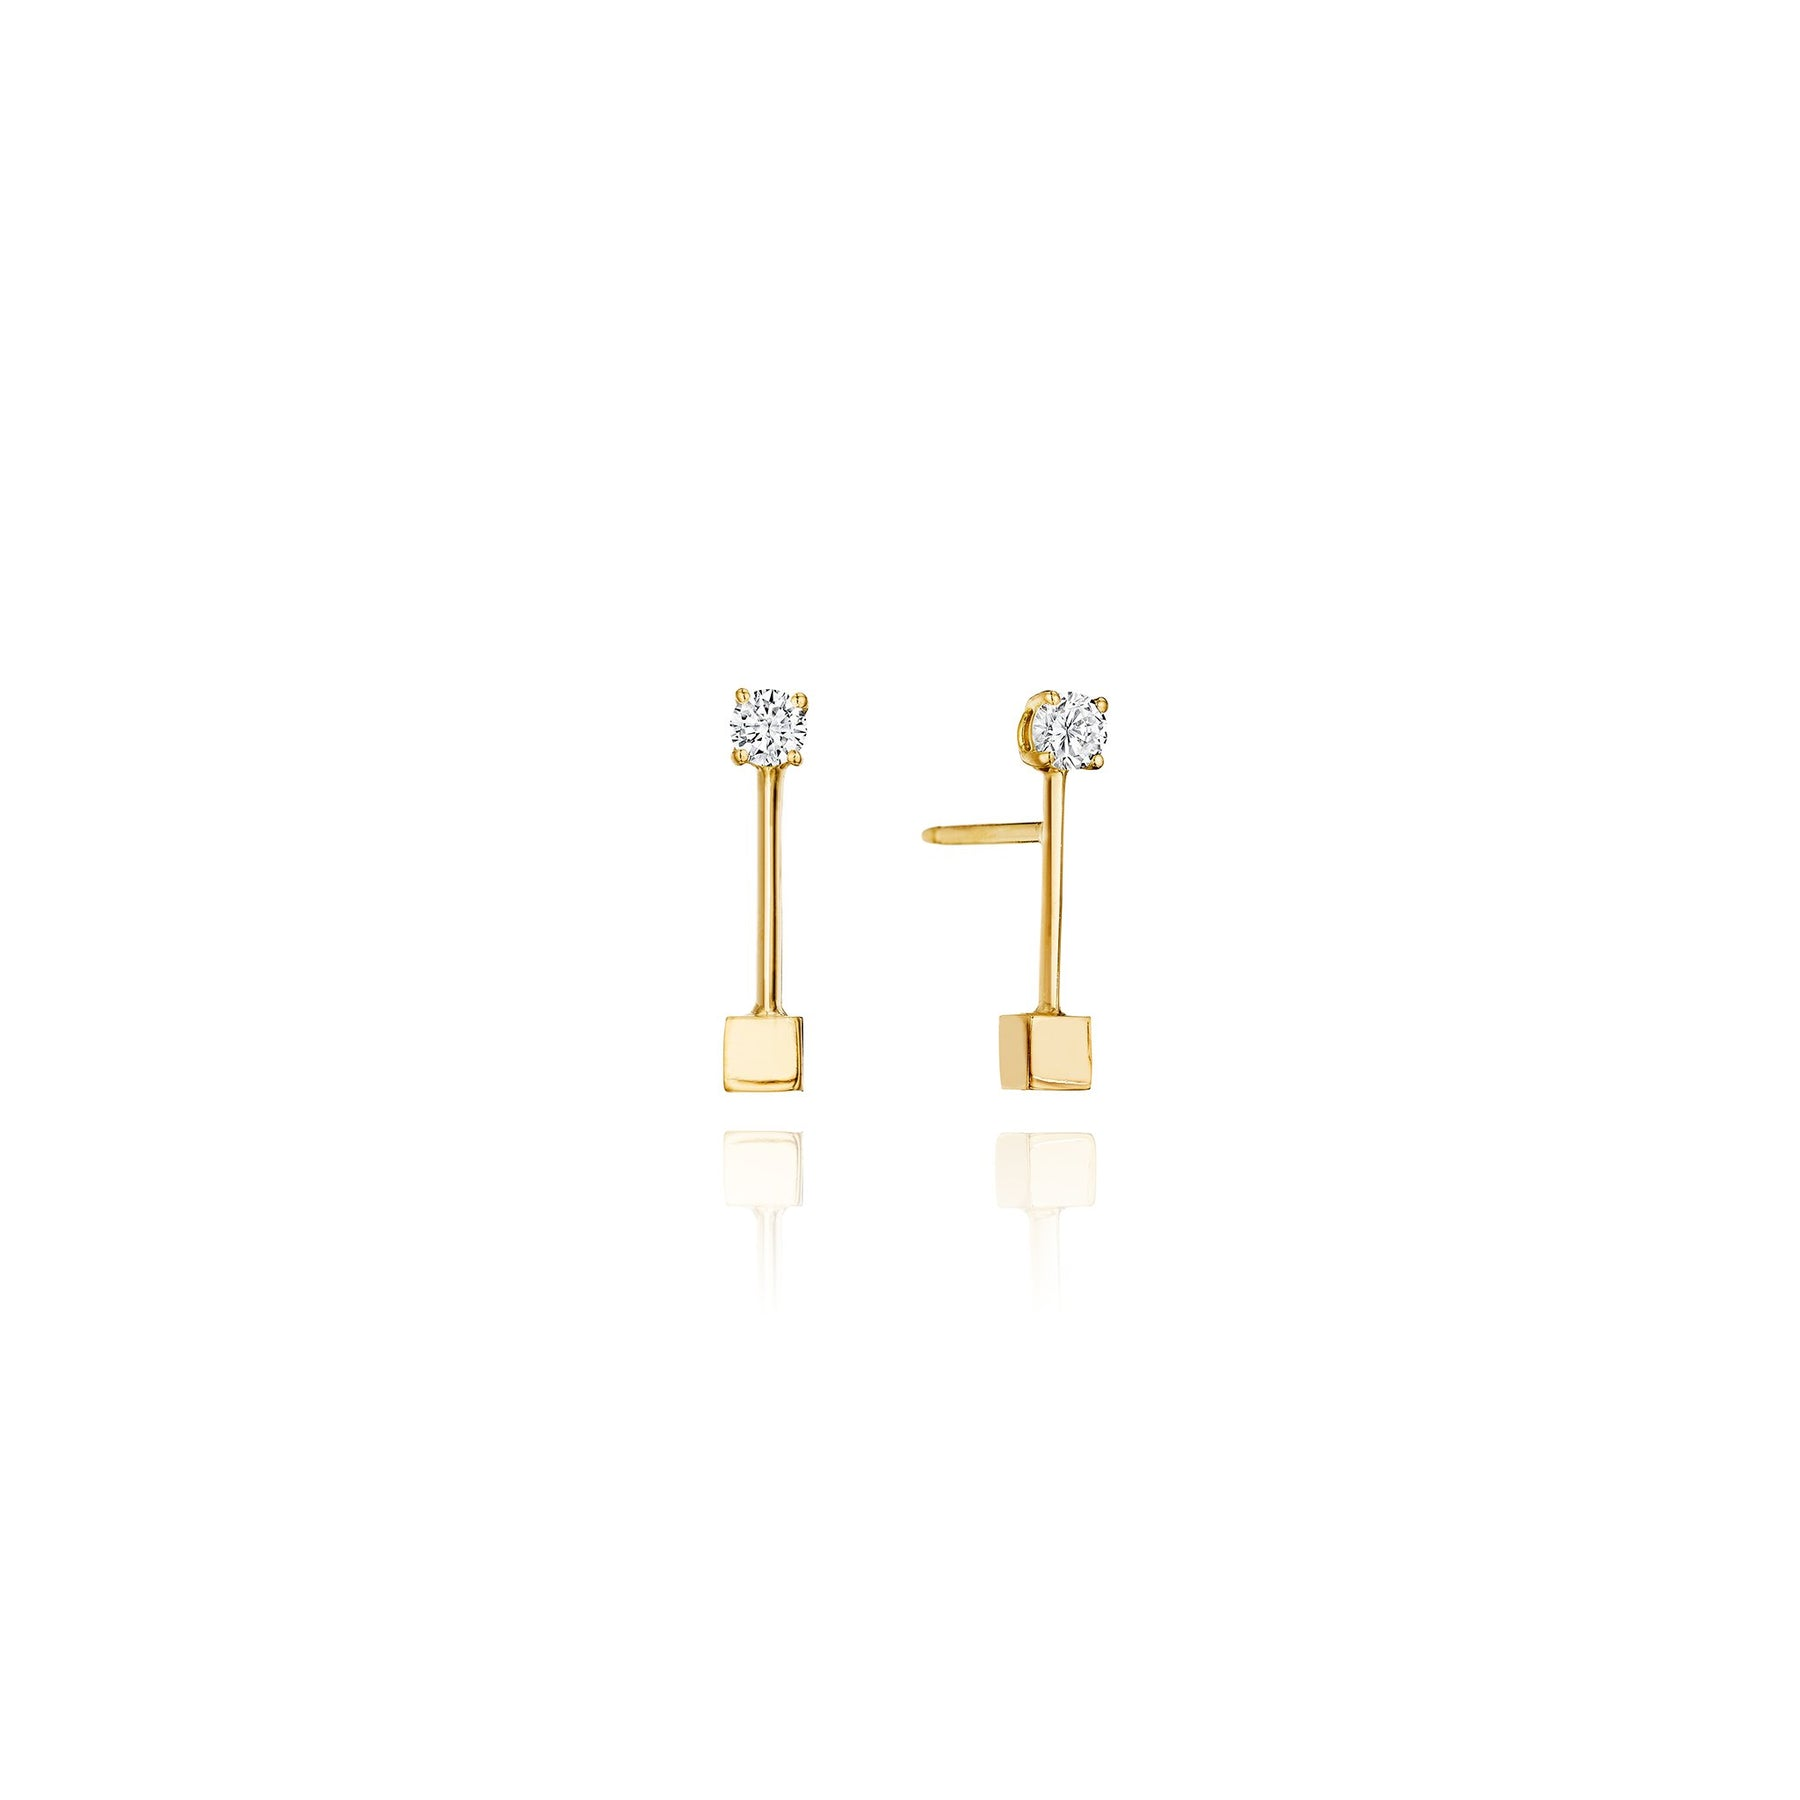 Mimi So Piece Stick Stud Earrings_18k Yellow Gold